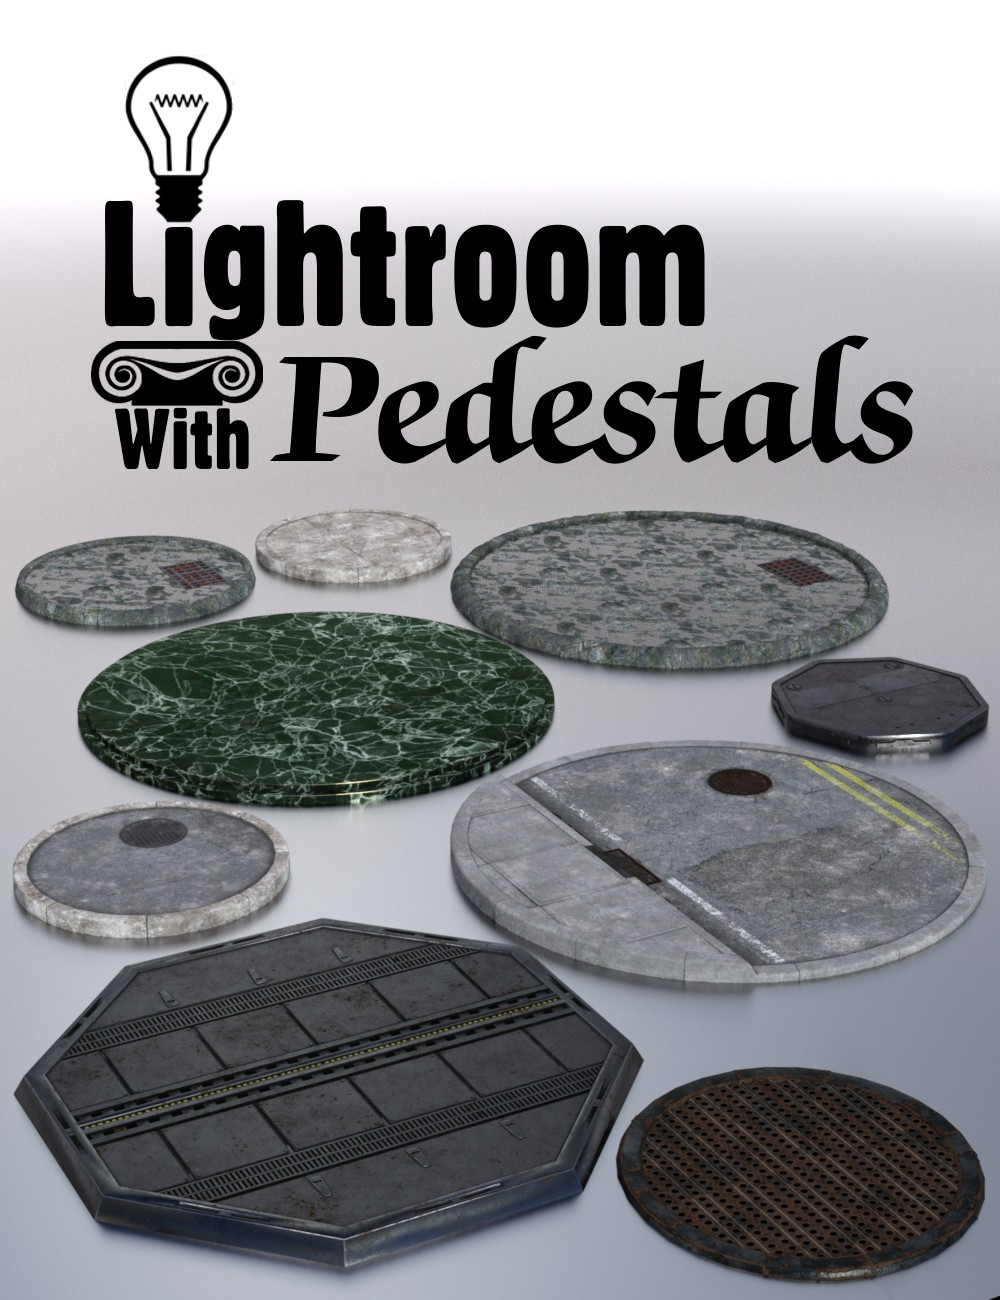 Lightroom with Pedestals by: DzFire, 3D Models by Daz 3D